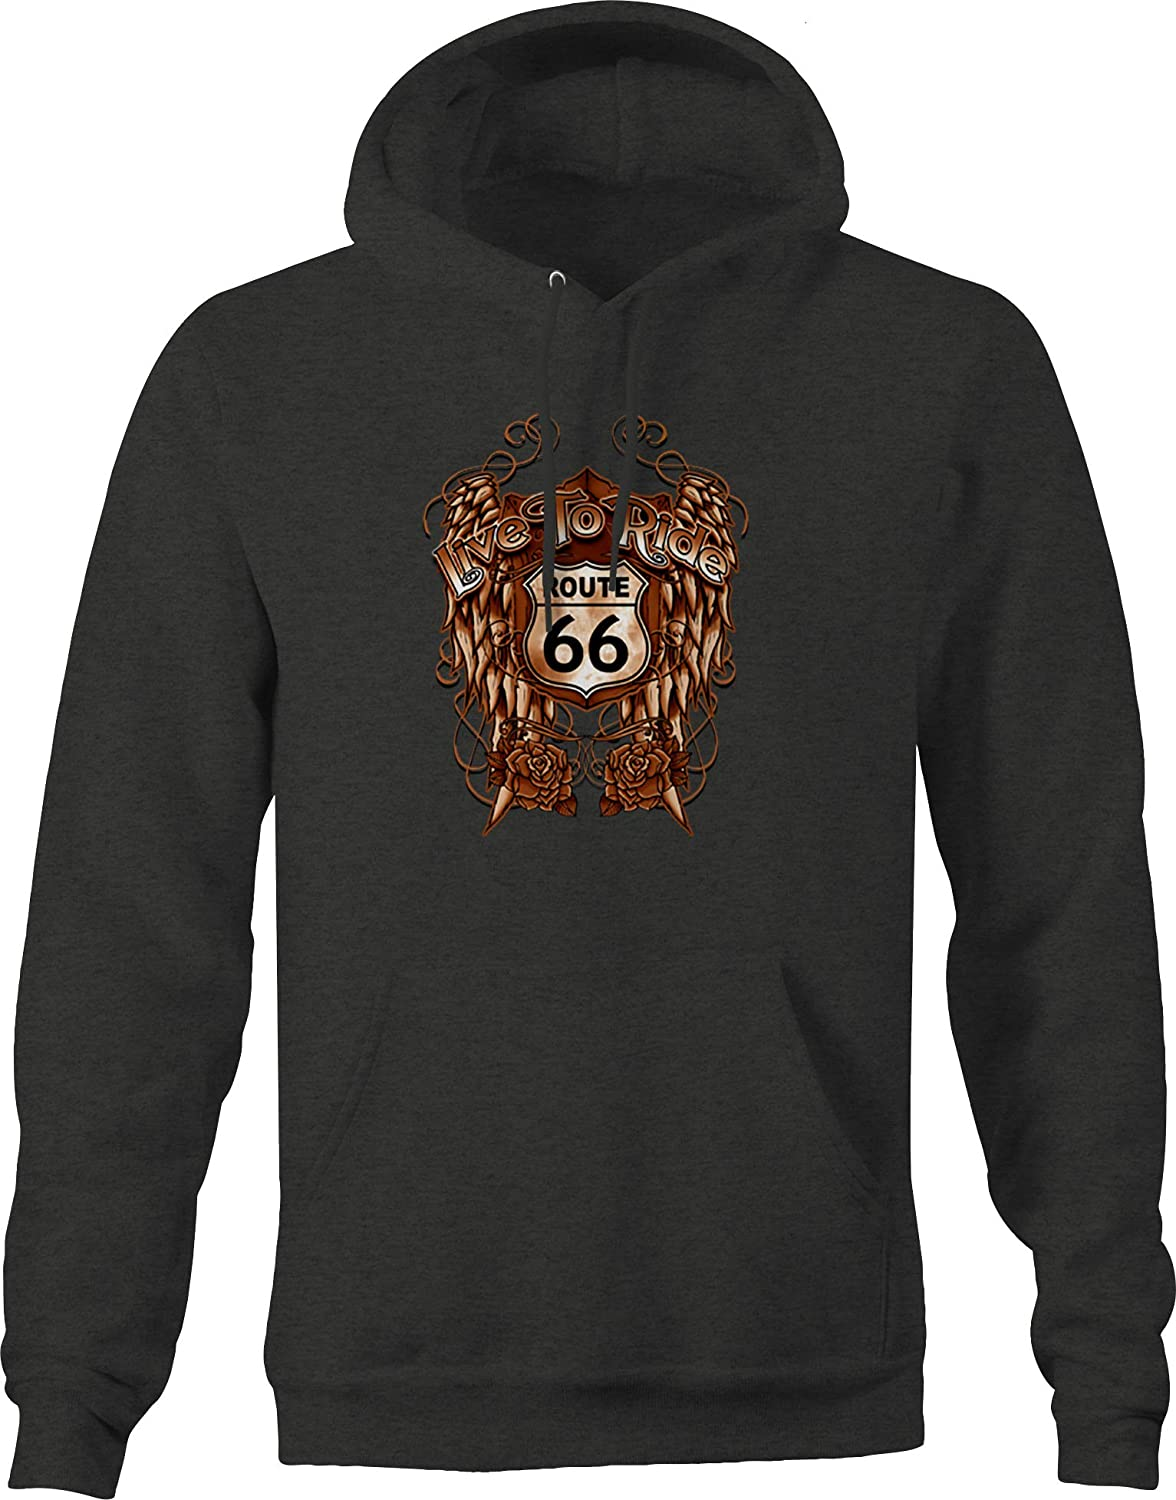 Route 66 Live to Ride Copper Angel Wings Roses Chopper Travel Hoodies for Men